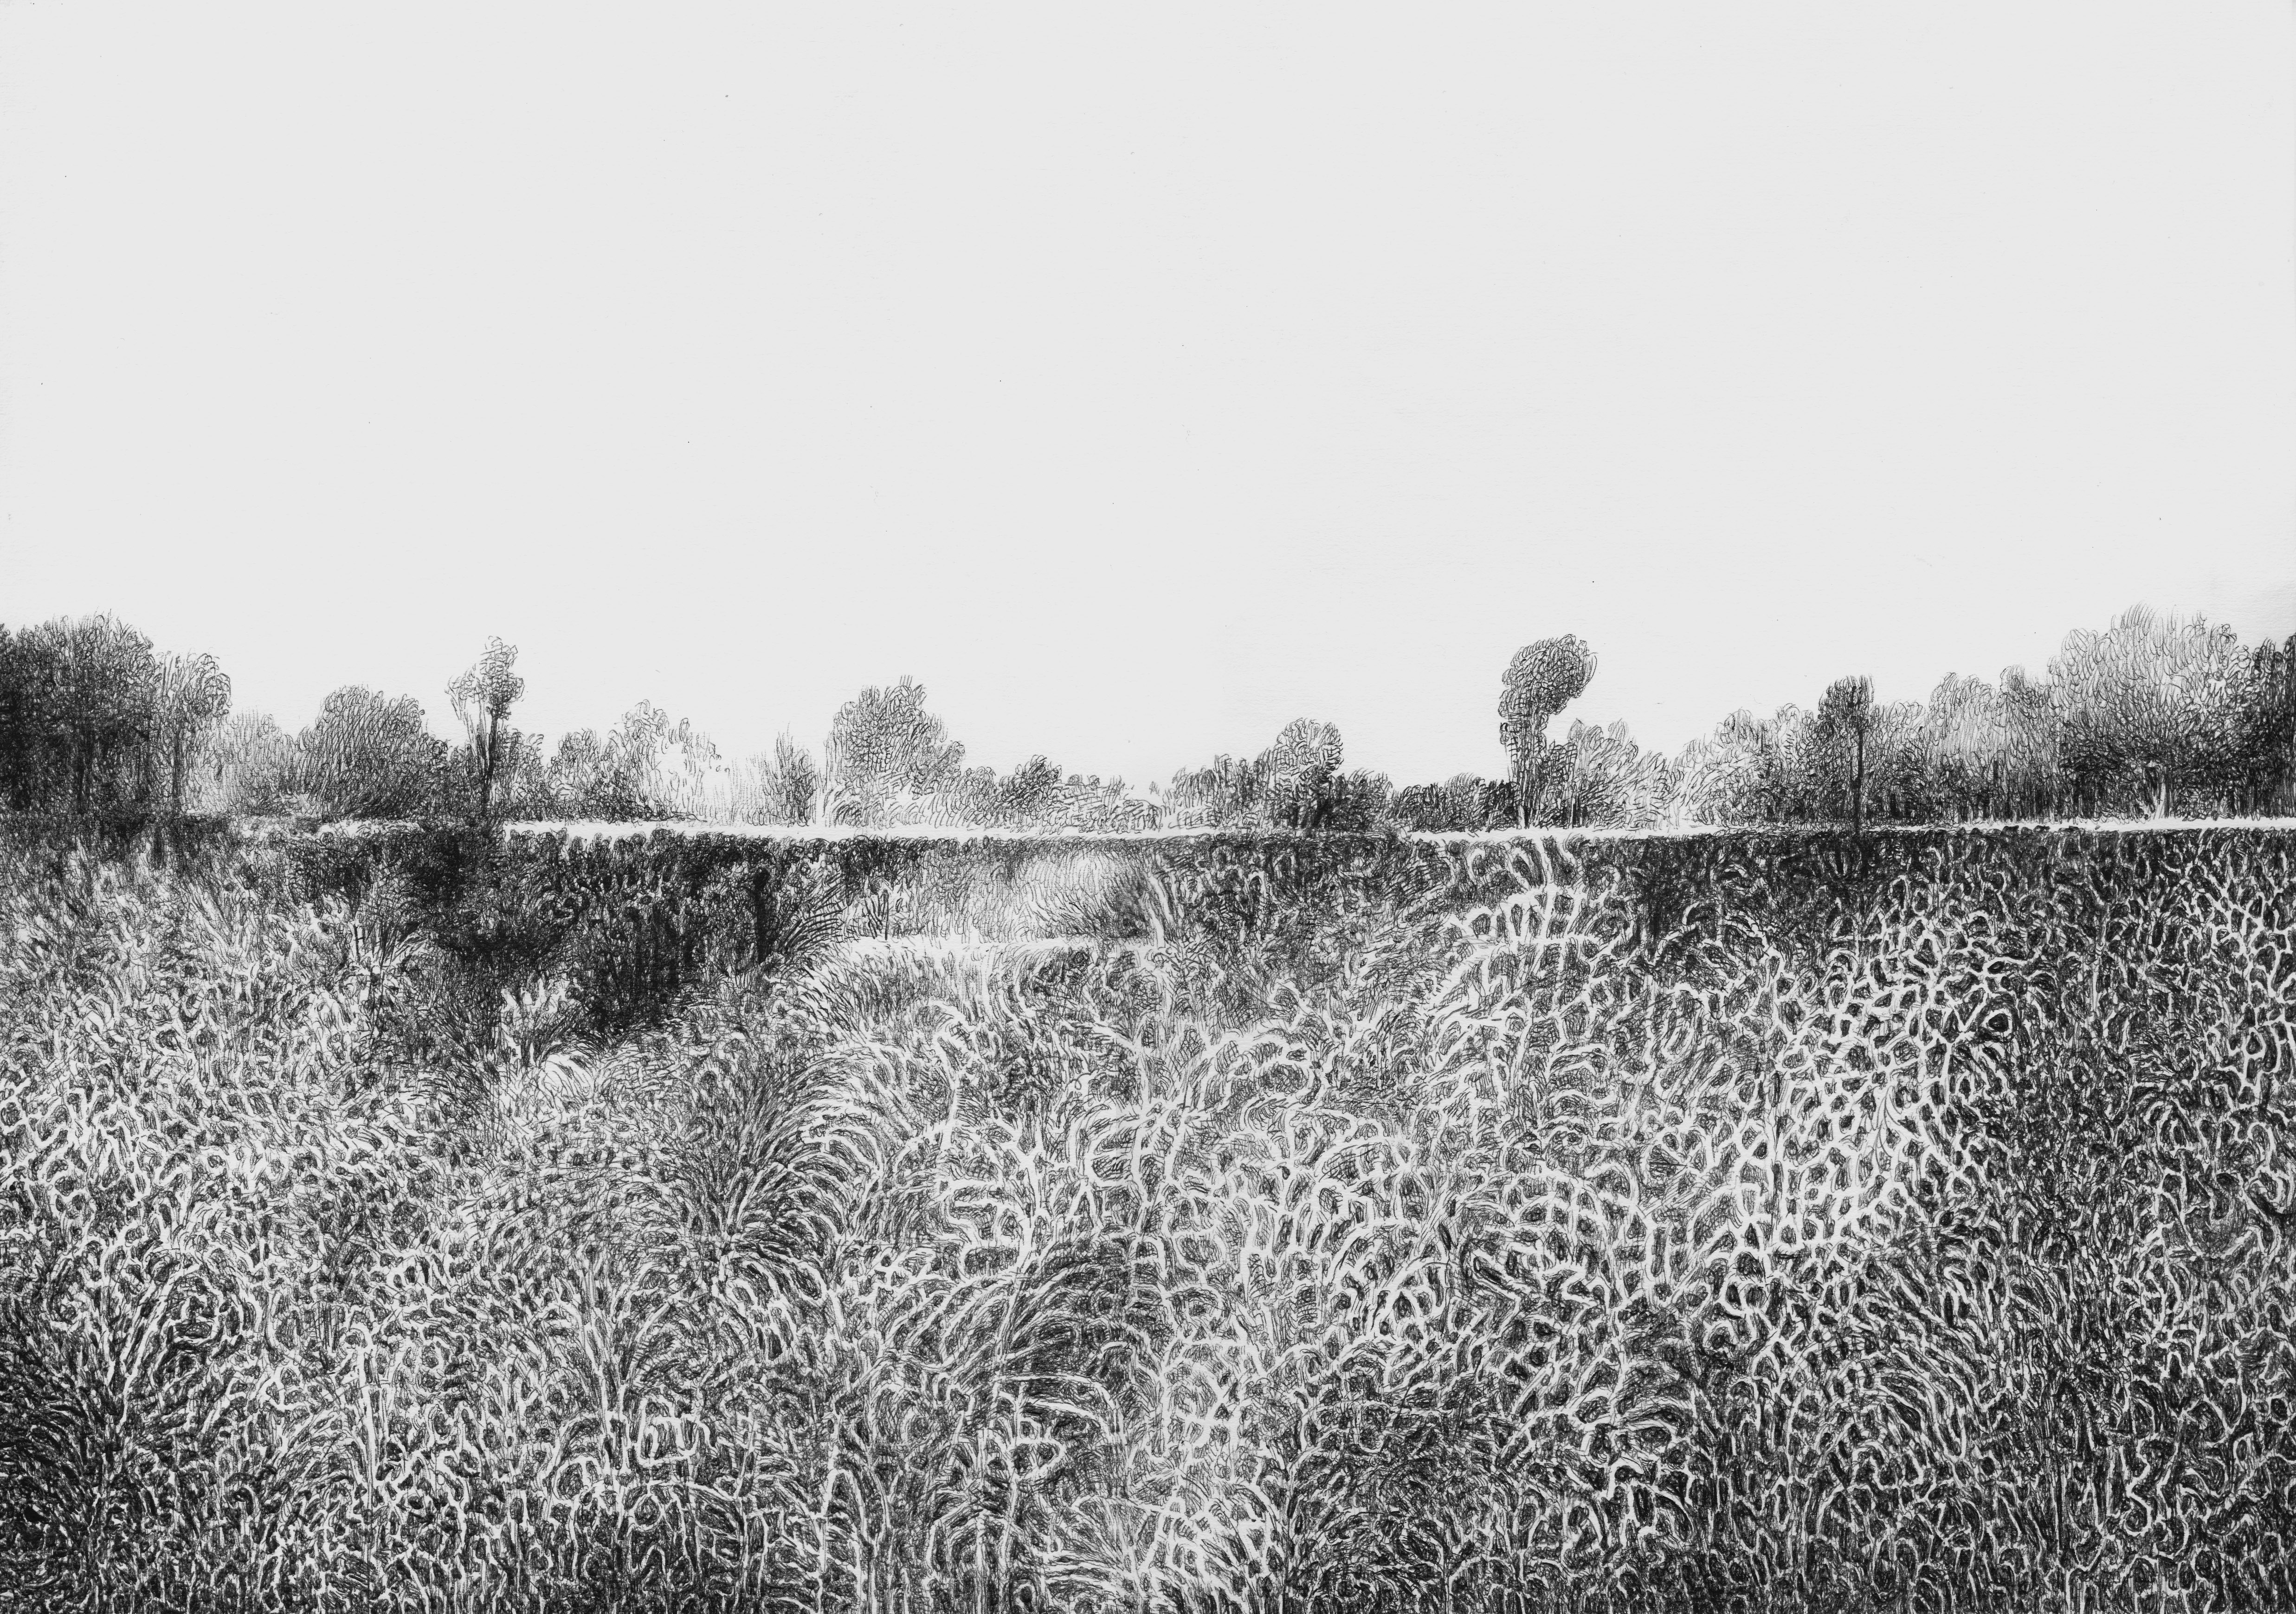 about landscape (Thought number Six)